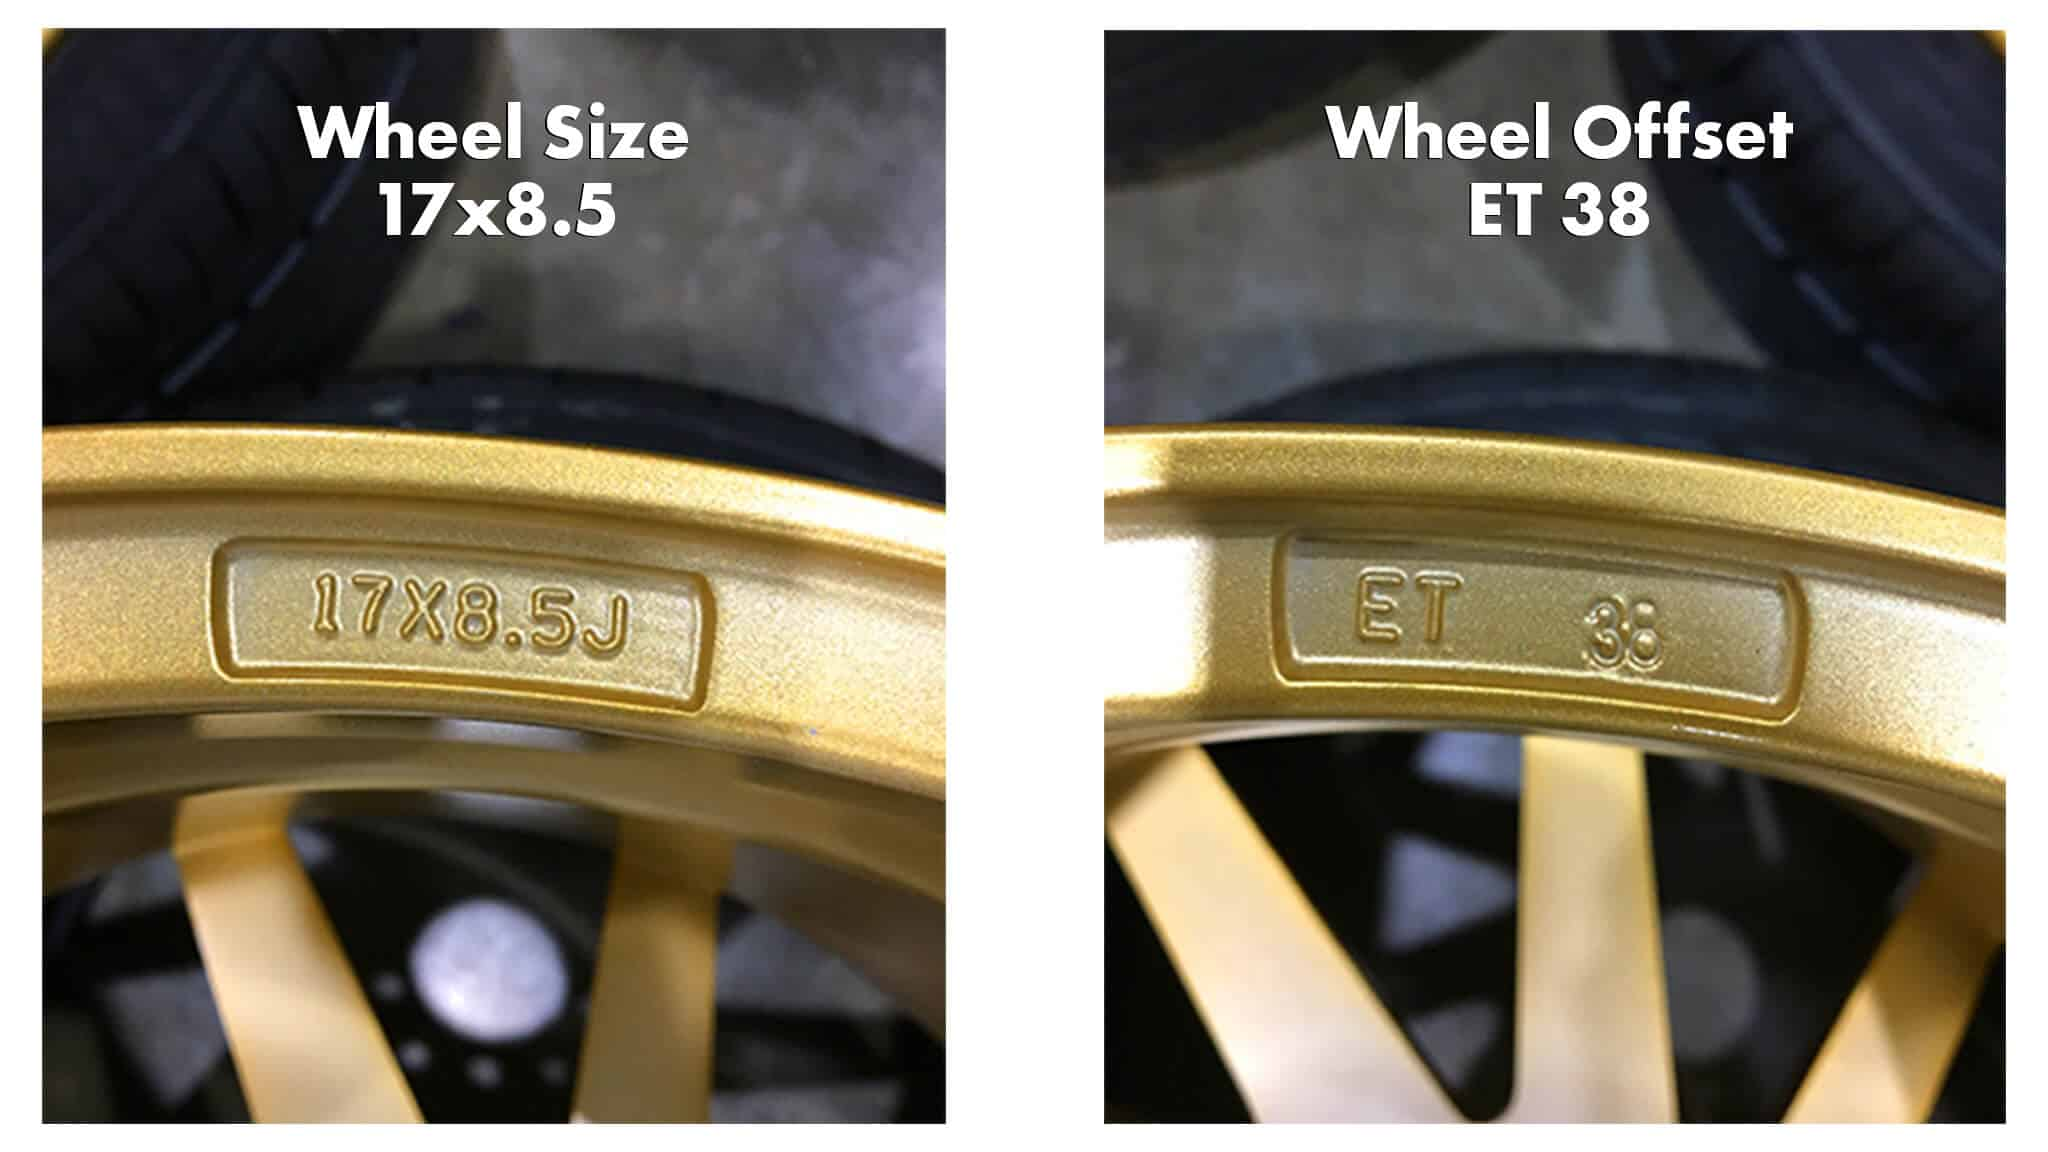 where to find offset on rims